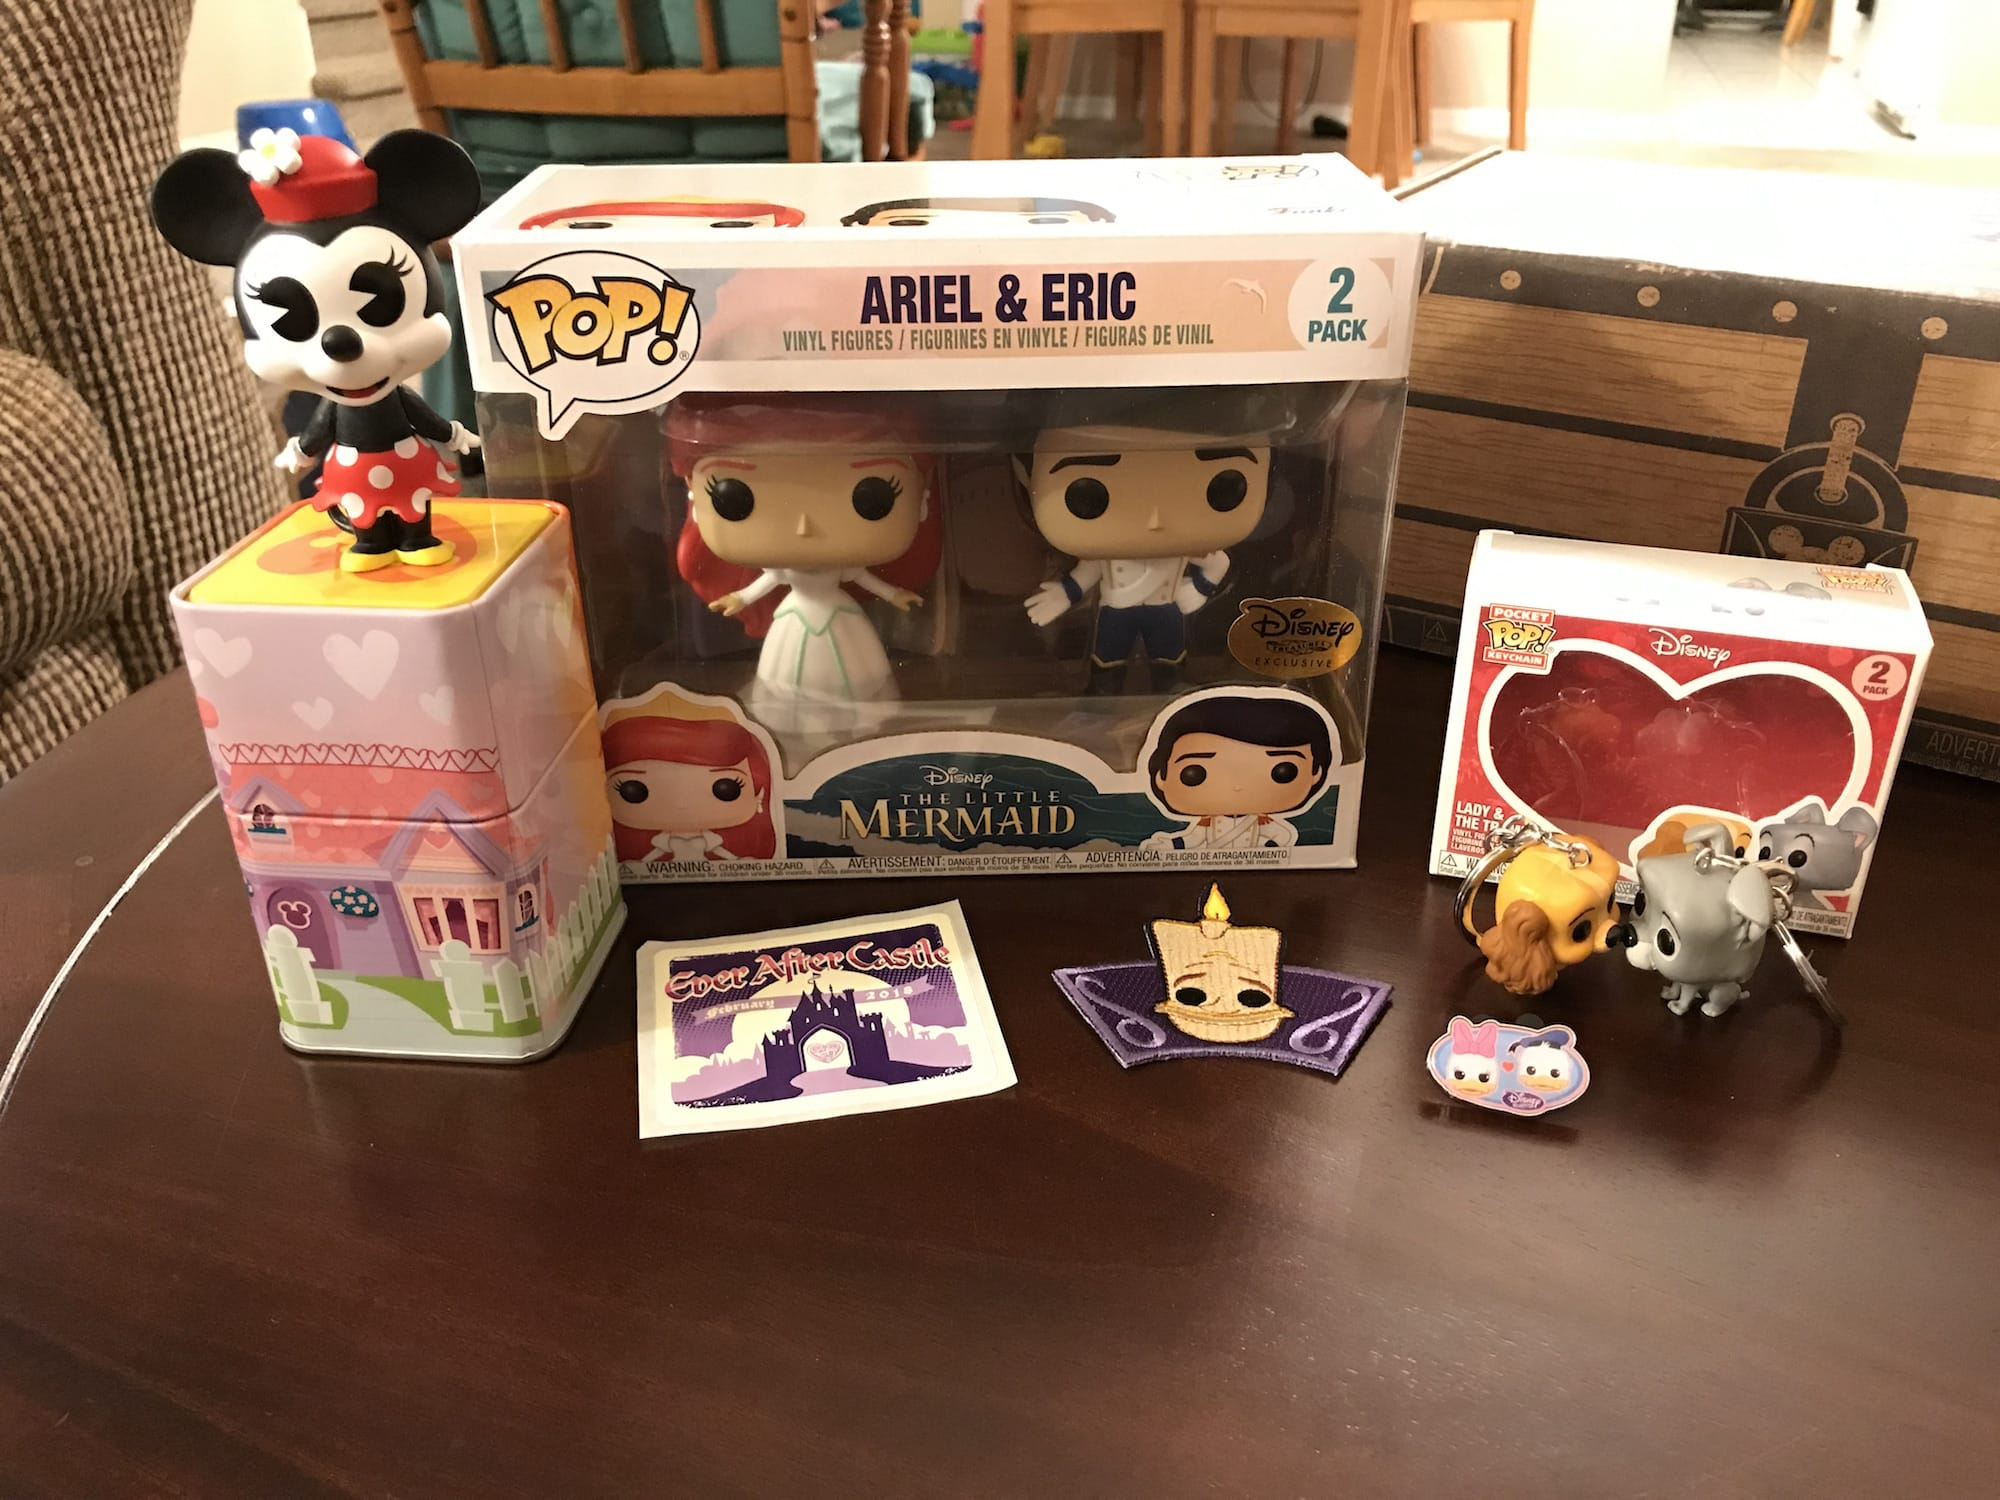 Comment Below With Ideas Of What Youd Like To See Funko Include In Future Disney Treasures Boxes